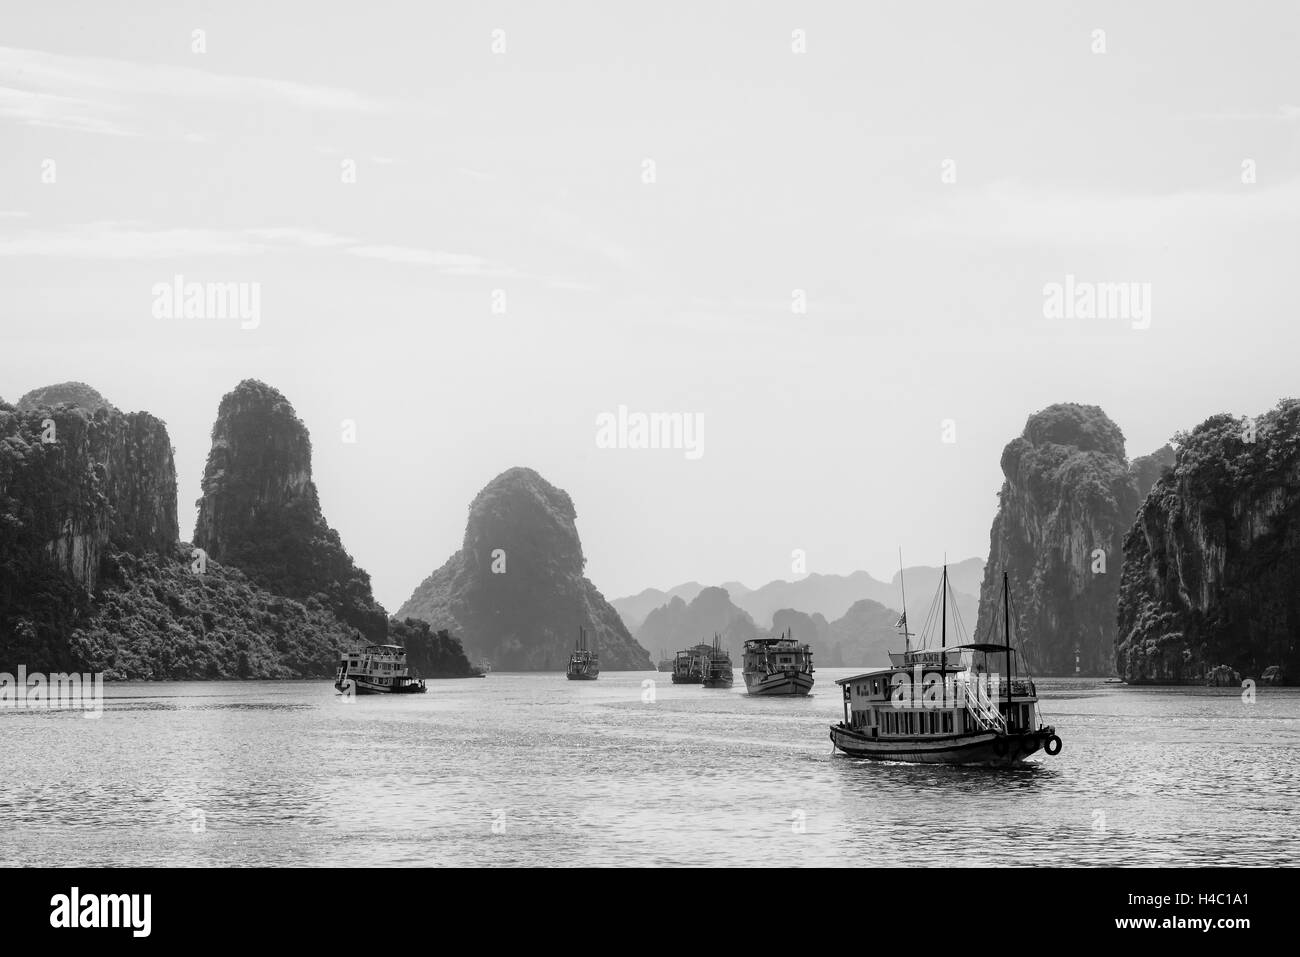 Cruise boats in Halong Bay - Stock Image